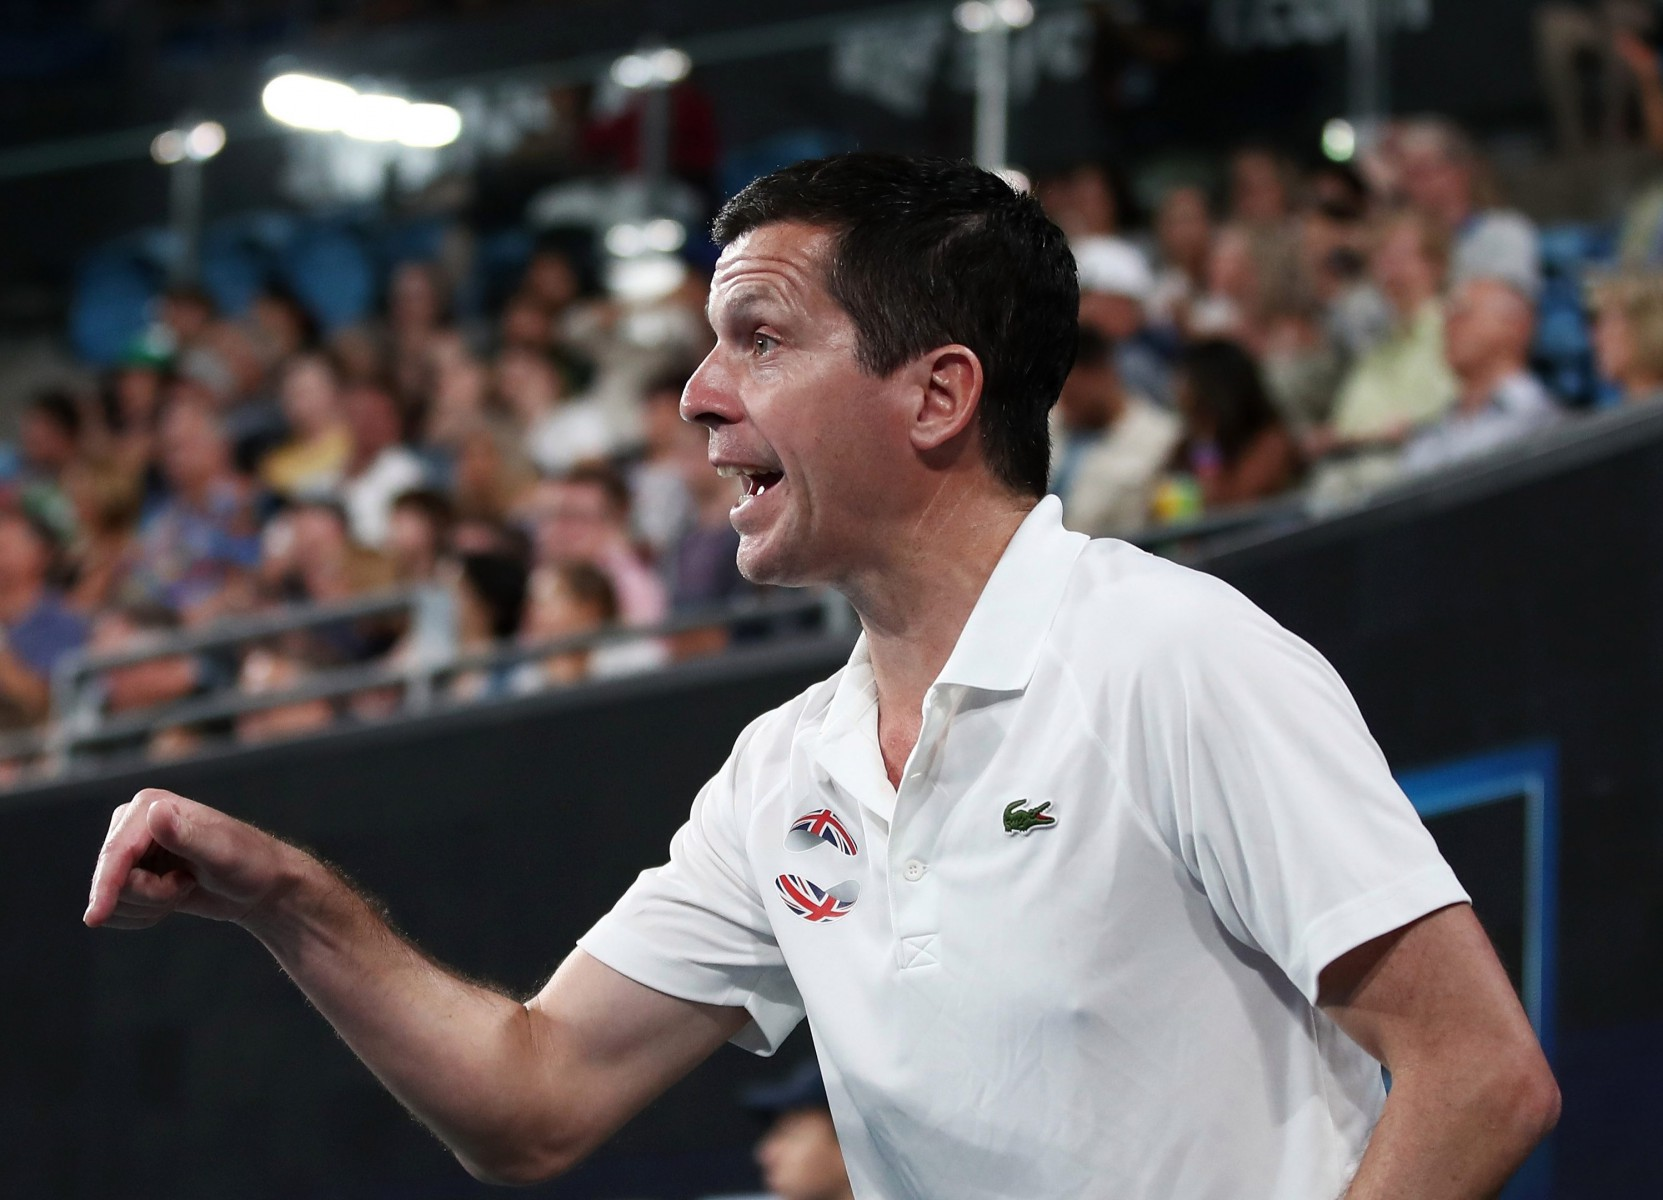 Tim Henman is captaining the British team in the inaugural edition of the ATP Cup, staged across Australia